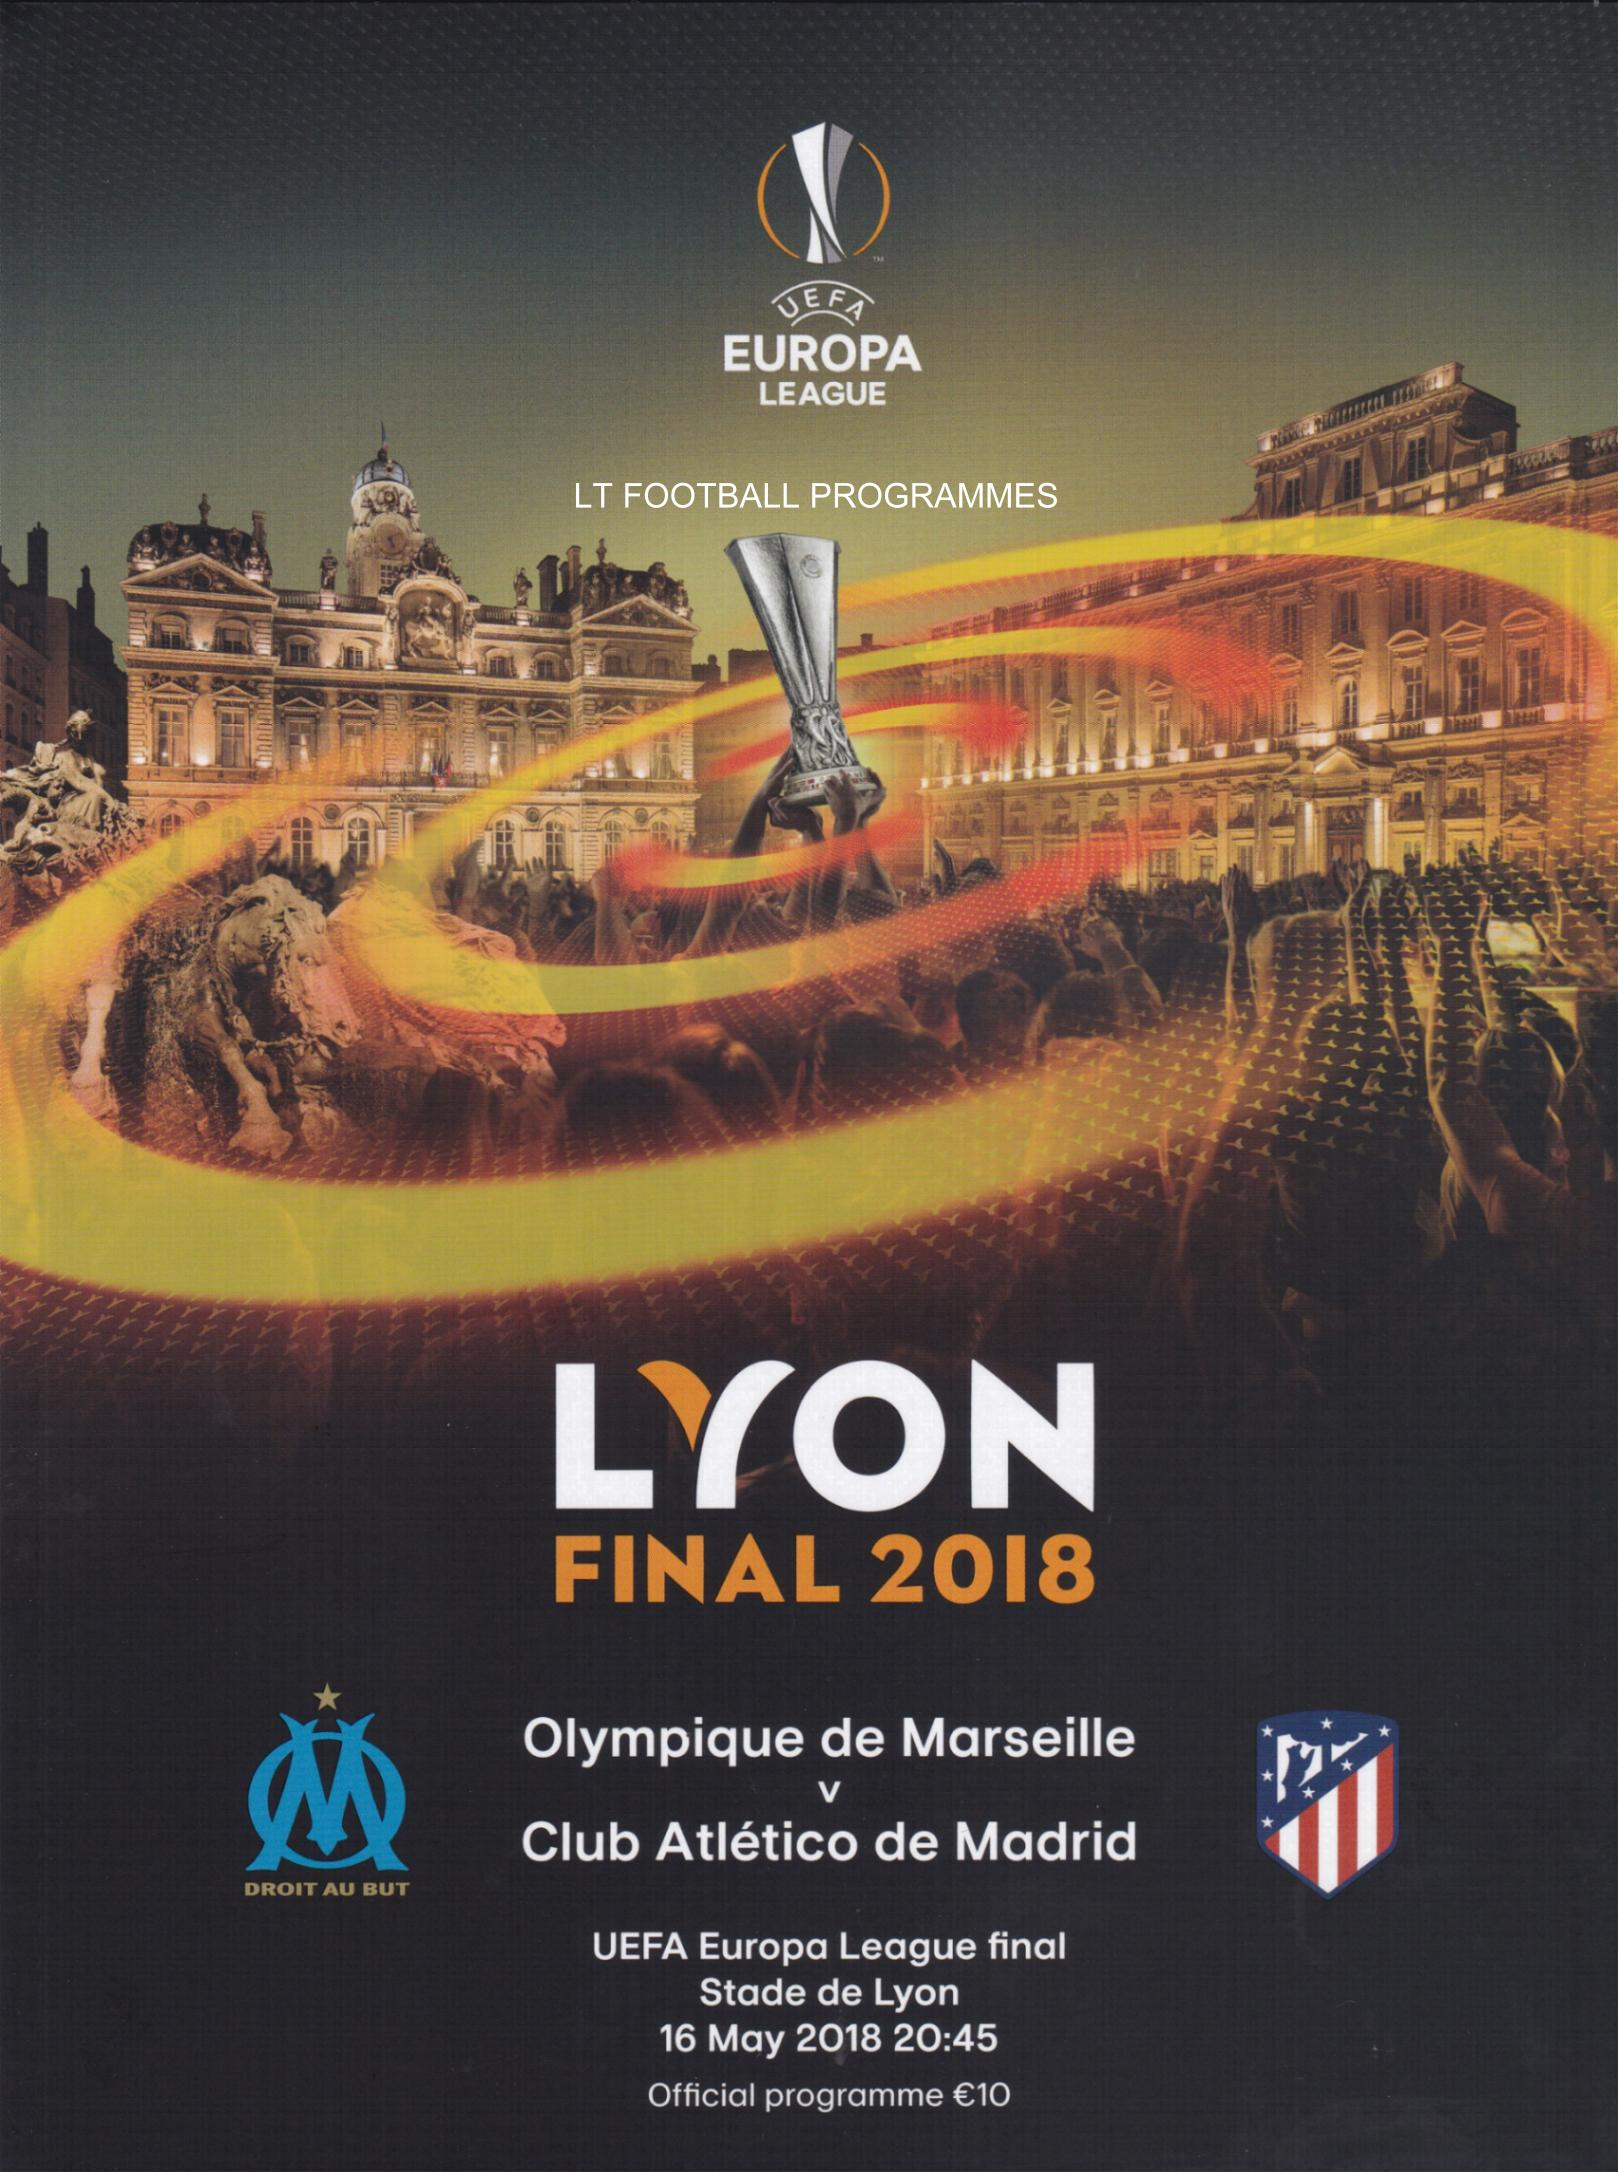 2018 EUROPA LEAGUE FINAL - ATLETICO MADRID v MARSEILLE